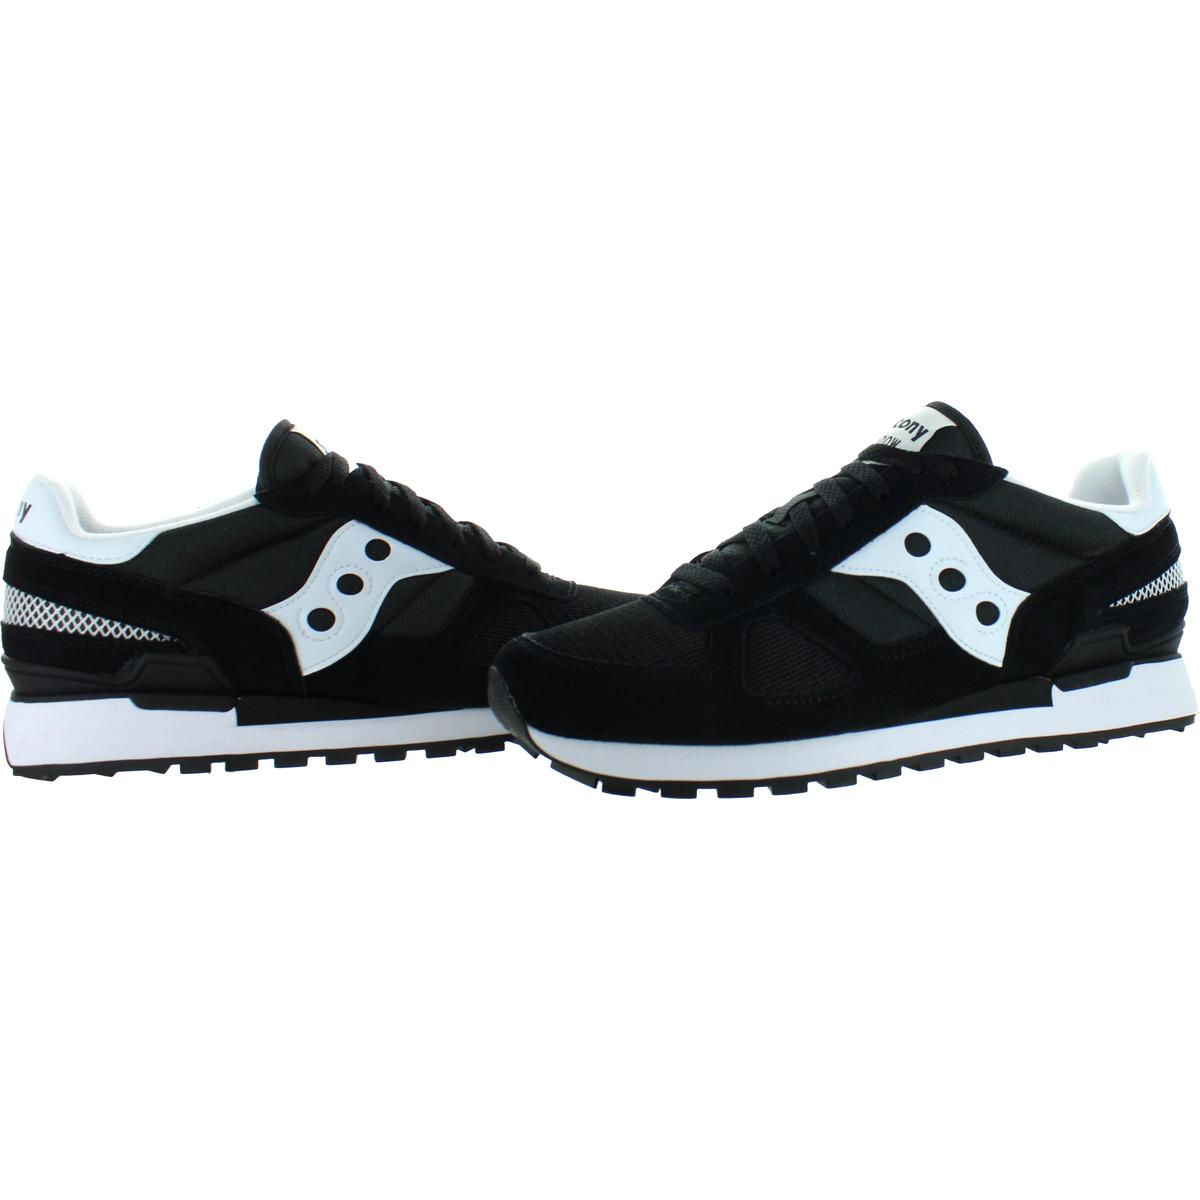 Saucony-Mens-Shadow-Original-Trainers-Suede-Comfort-Sneakers-Shoes-BHFO-0431 thumbnail 5